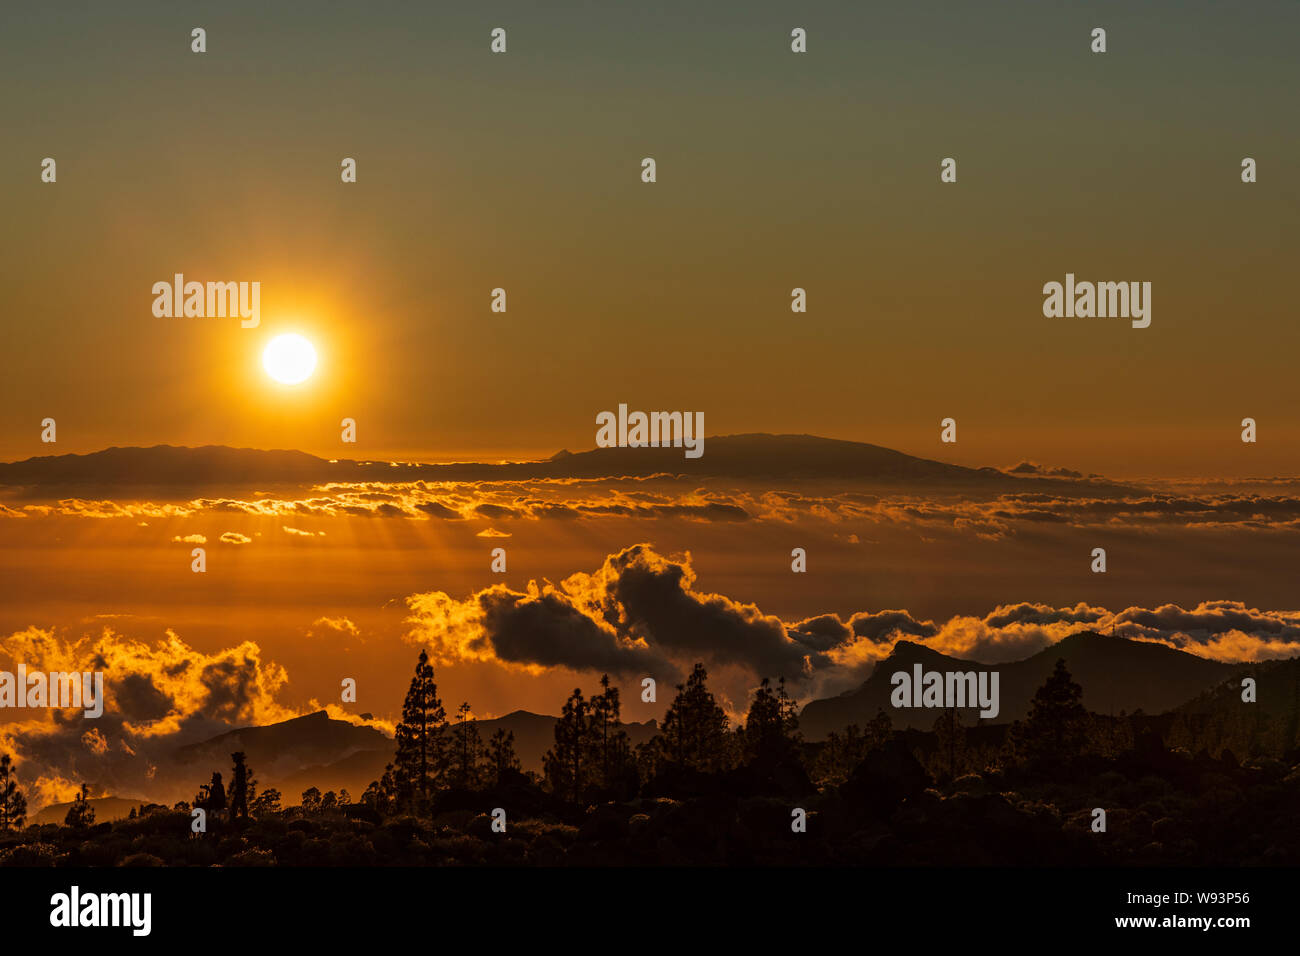 bright-hot-sun-shining-over-la-palma-on-to-clouds-and-volcanic-landscape-of-the-island-of-tenerife-late-in-the-evening-giving-a-deep-orange-glow-to-th-W93P56.jpg